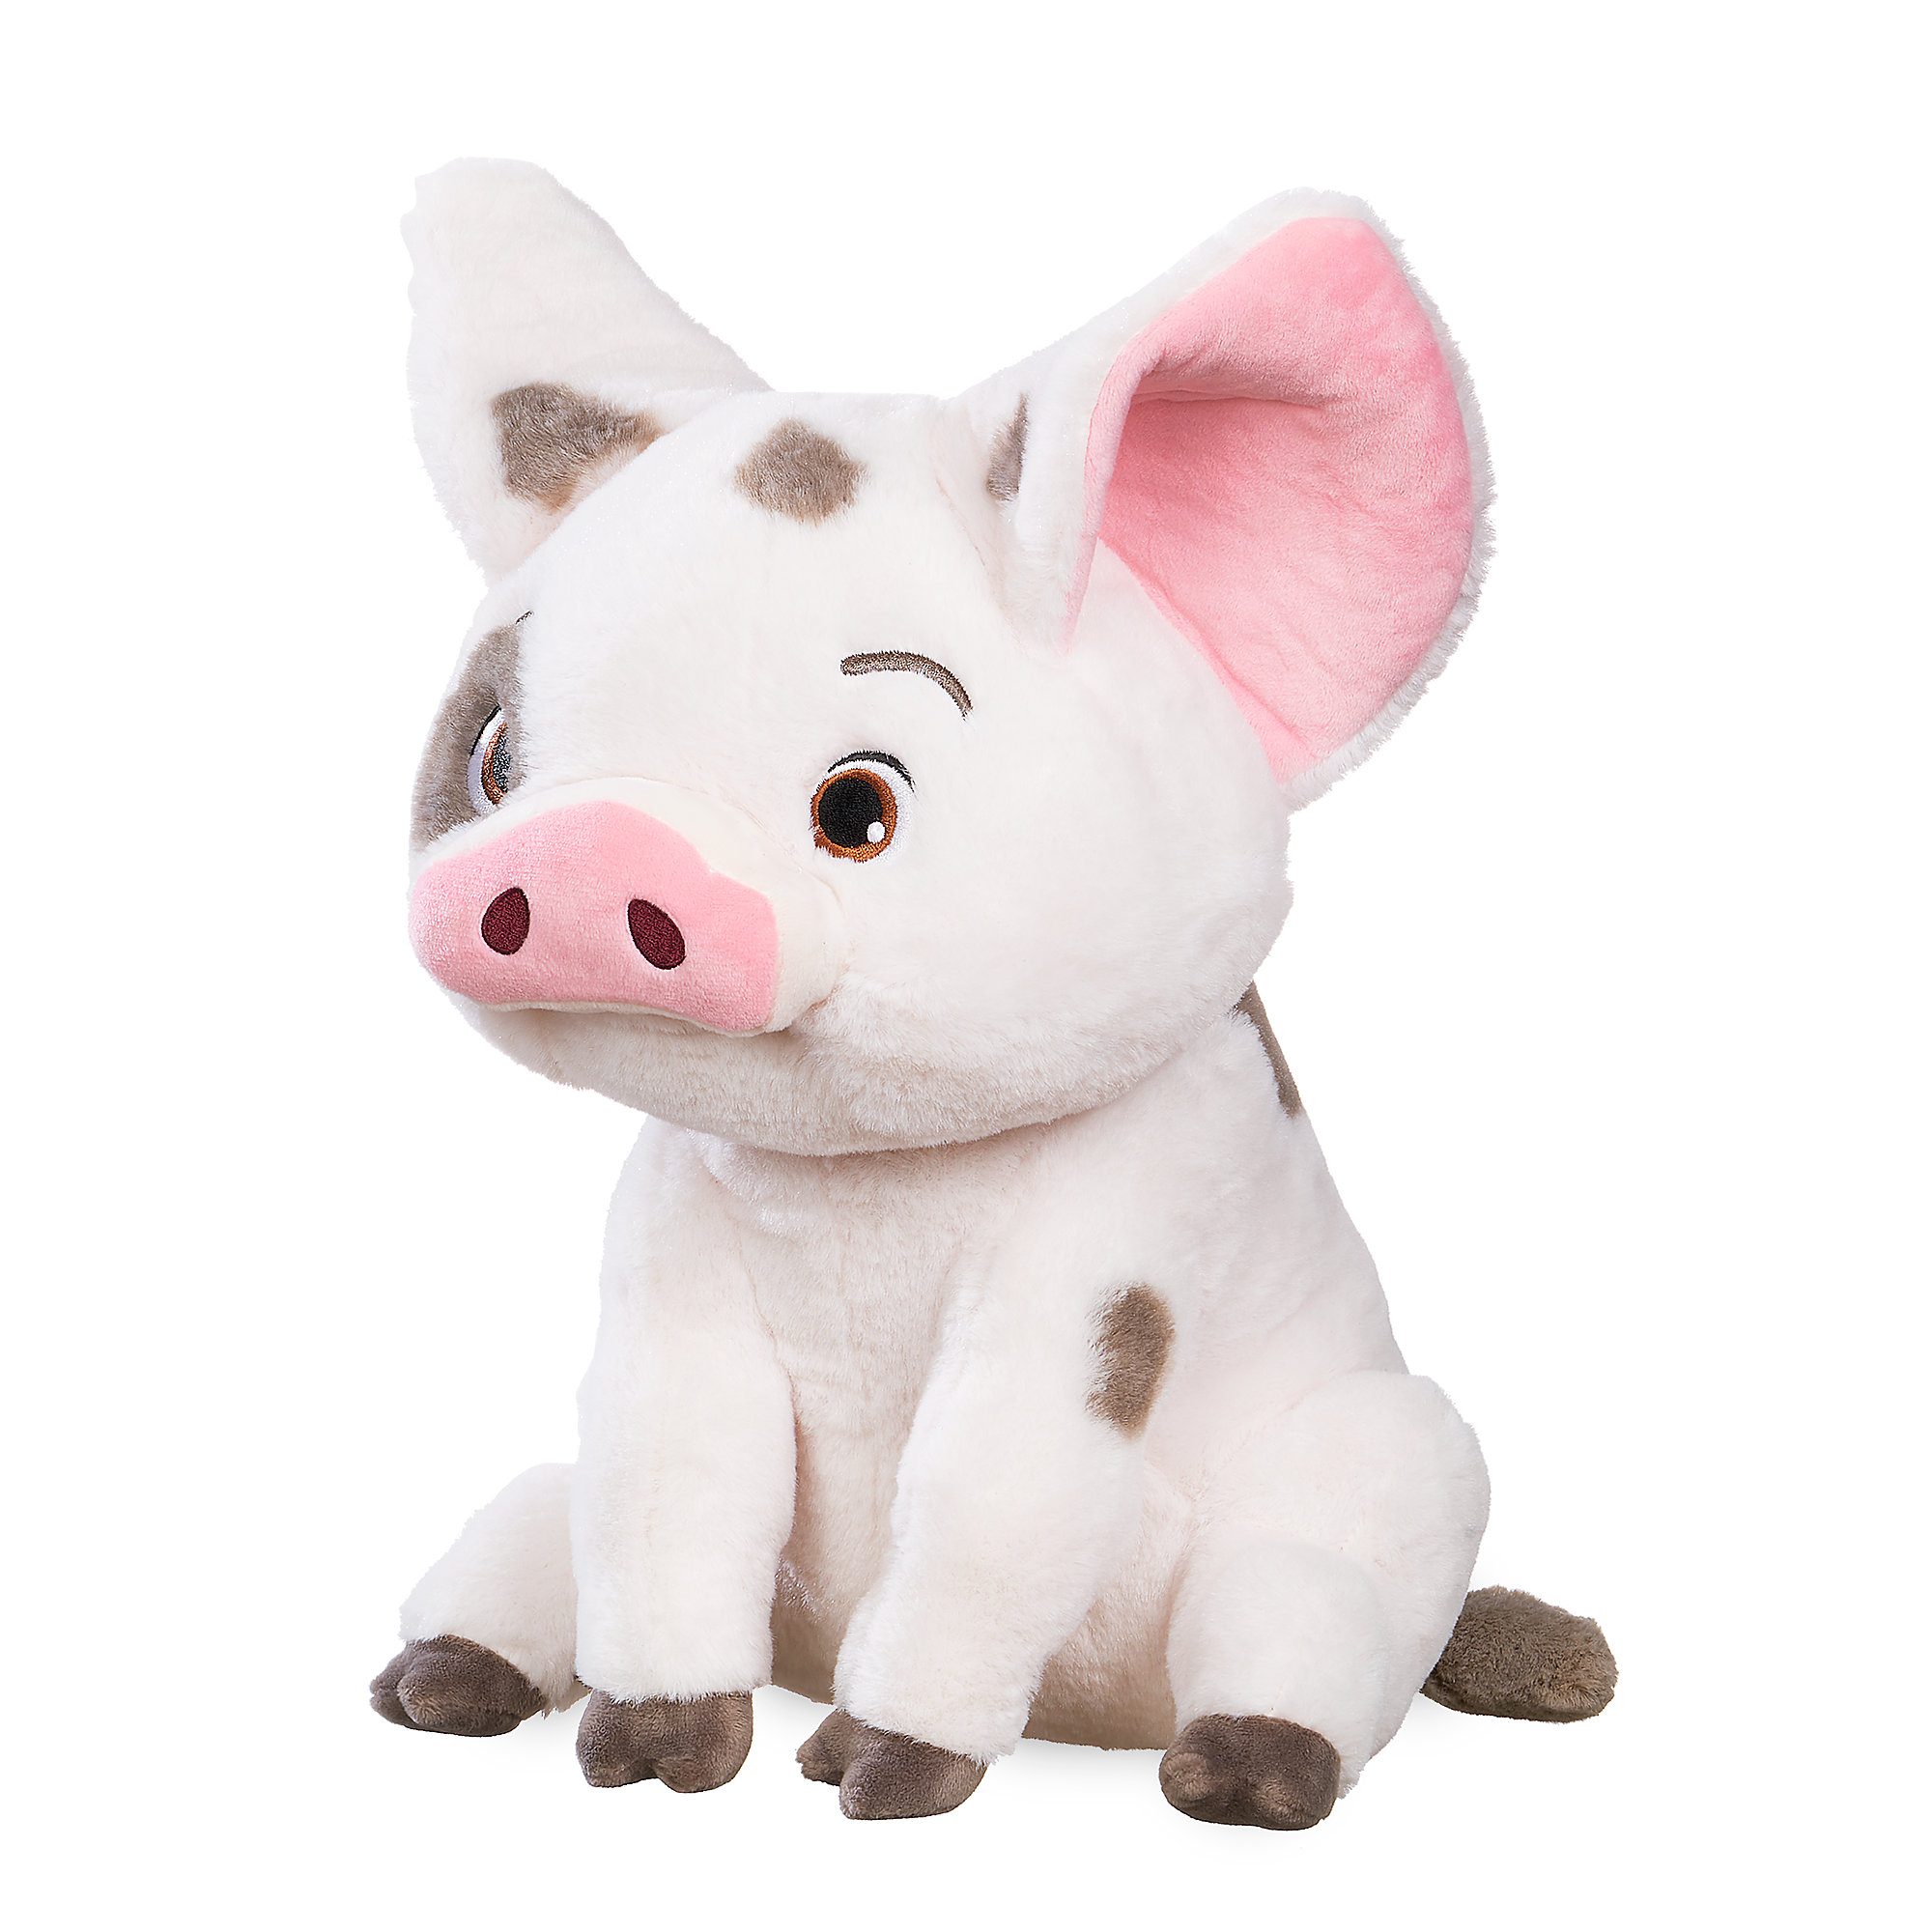 Pua Plush - Disney Moana - Medium